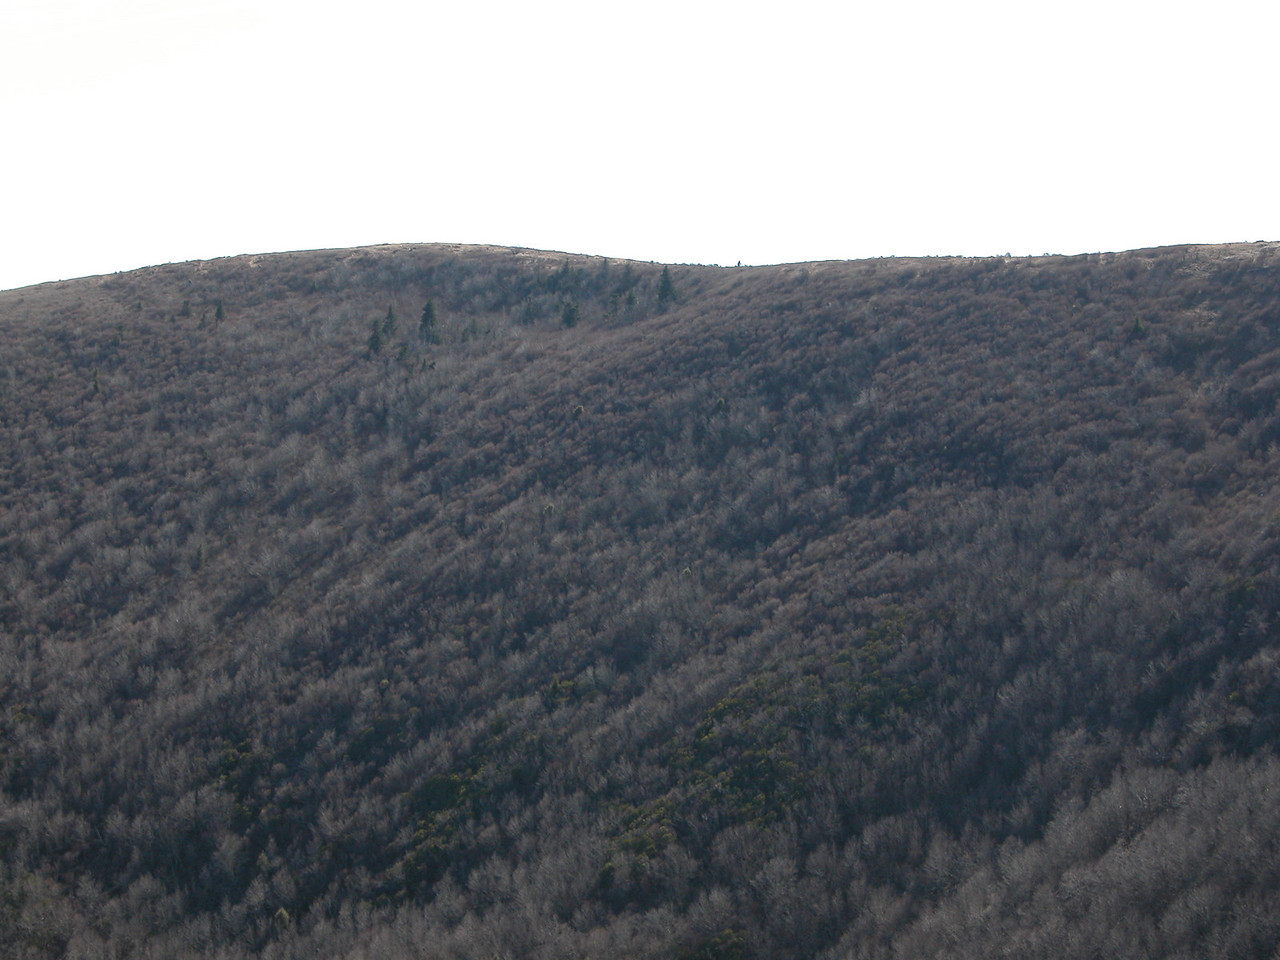 another part of failed attempt at producing a pano from the summit of Tennent